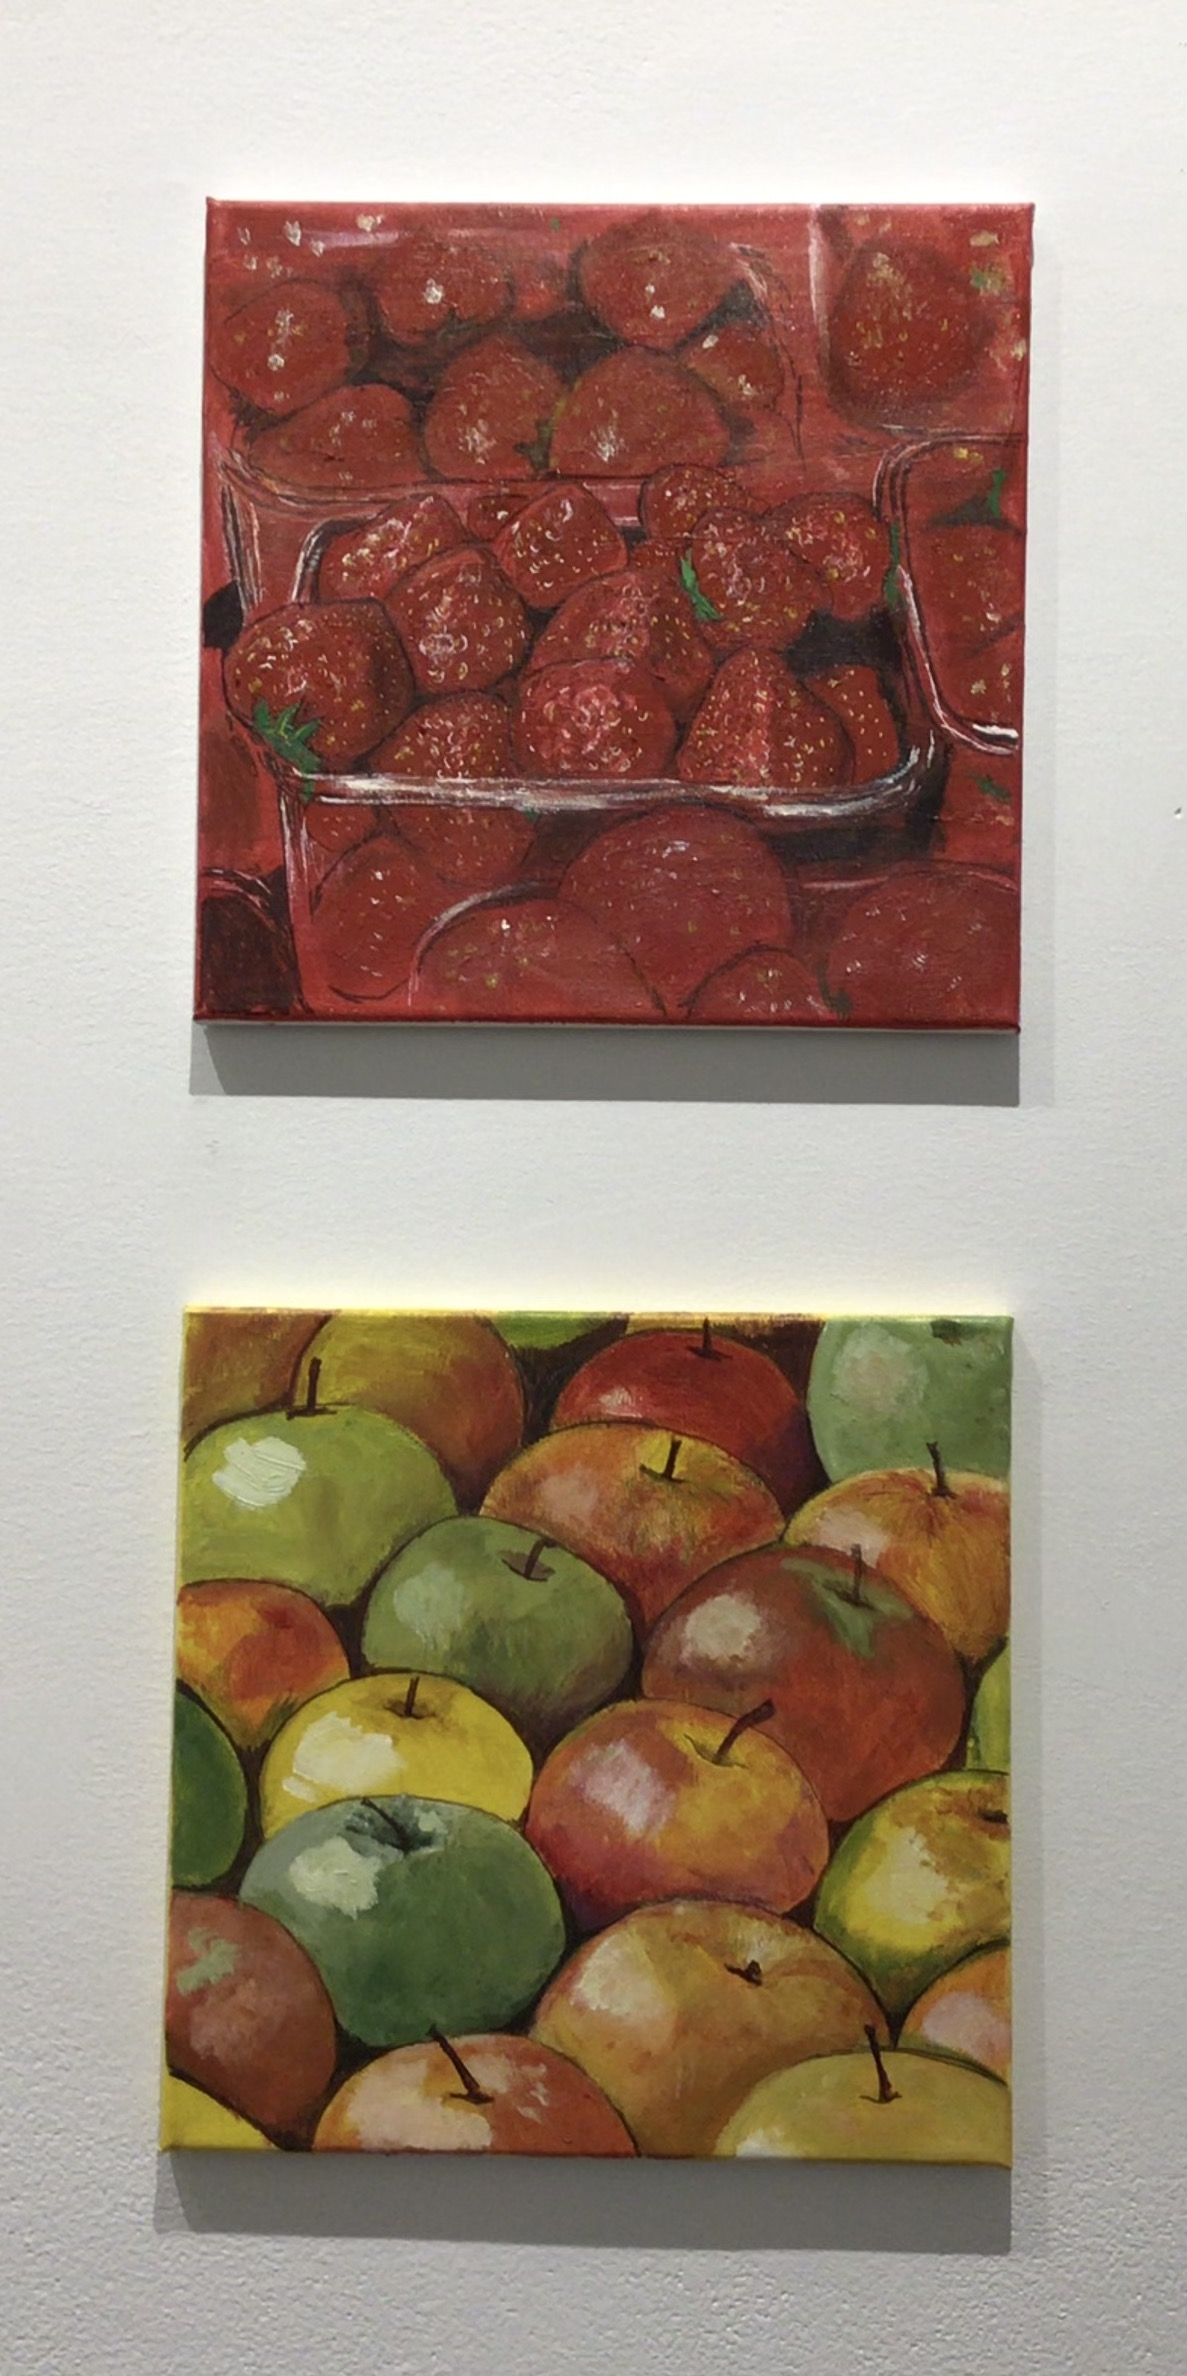 essie Bennett  -  Fraises  -  acrylic on canvas  -  12 x 12  -  $200  Apples  -  acrylic on canvas  -  12 x 12  -  $200.